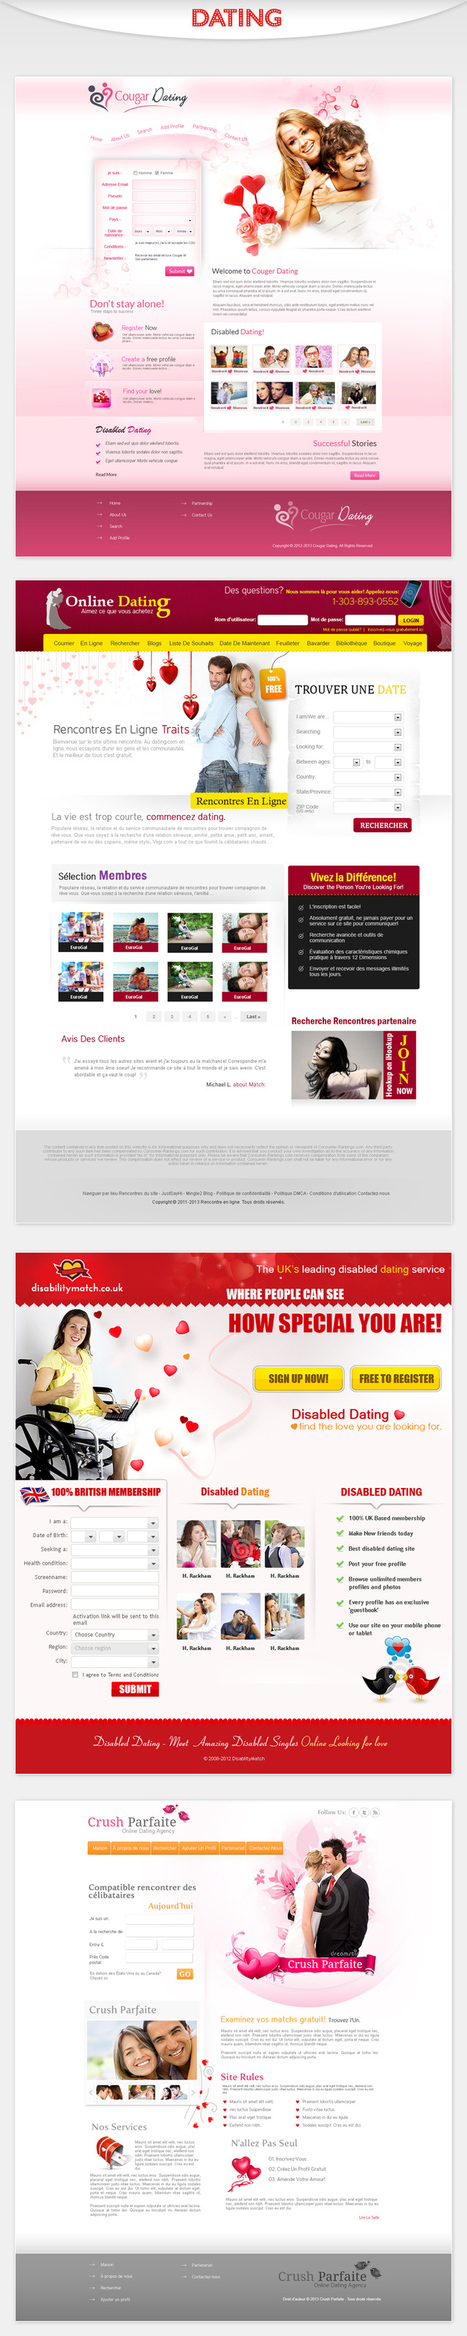 Dating Website Design Works | Web Design | Scoop.it